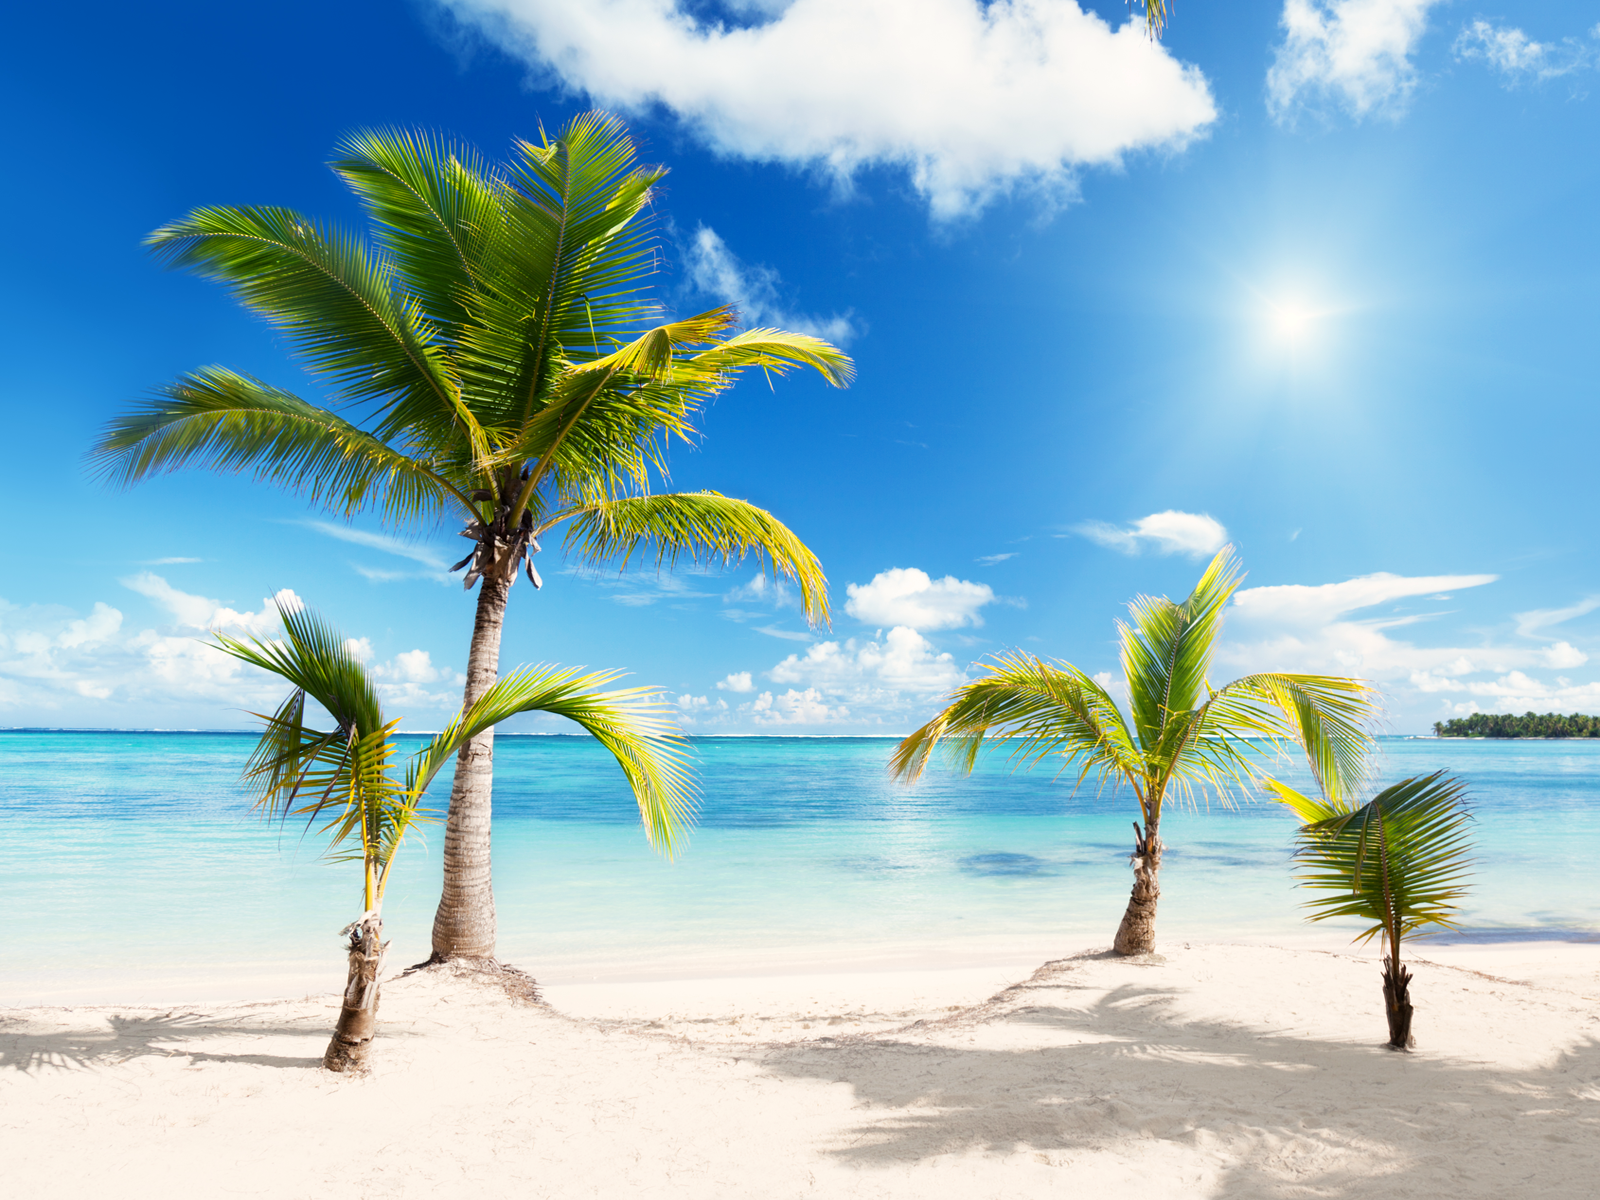 Beach Download Png PNG Image - Beach PNG